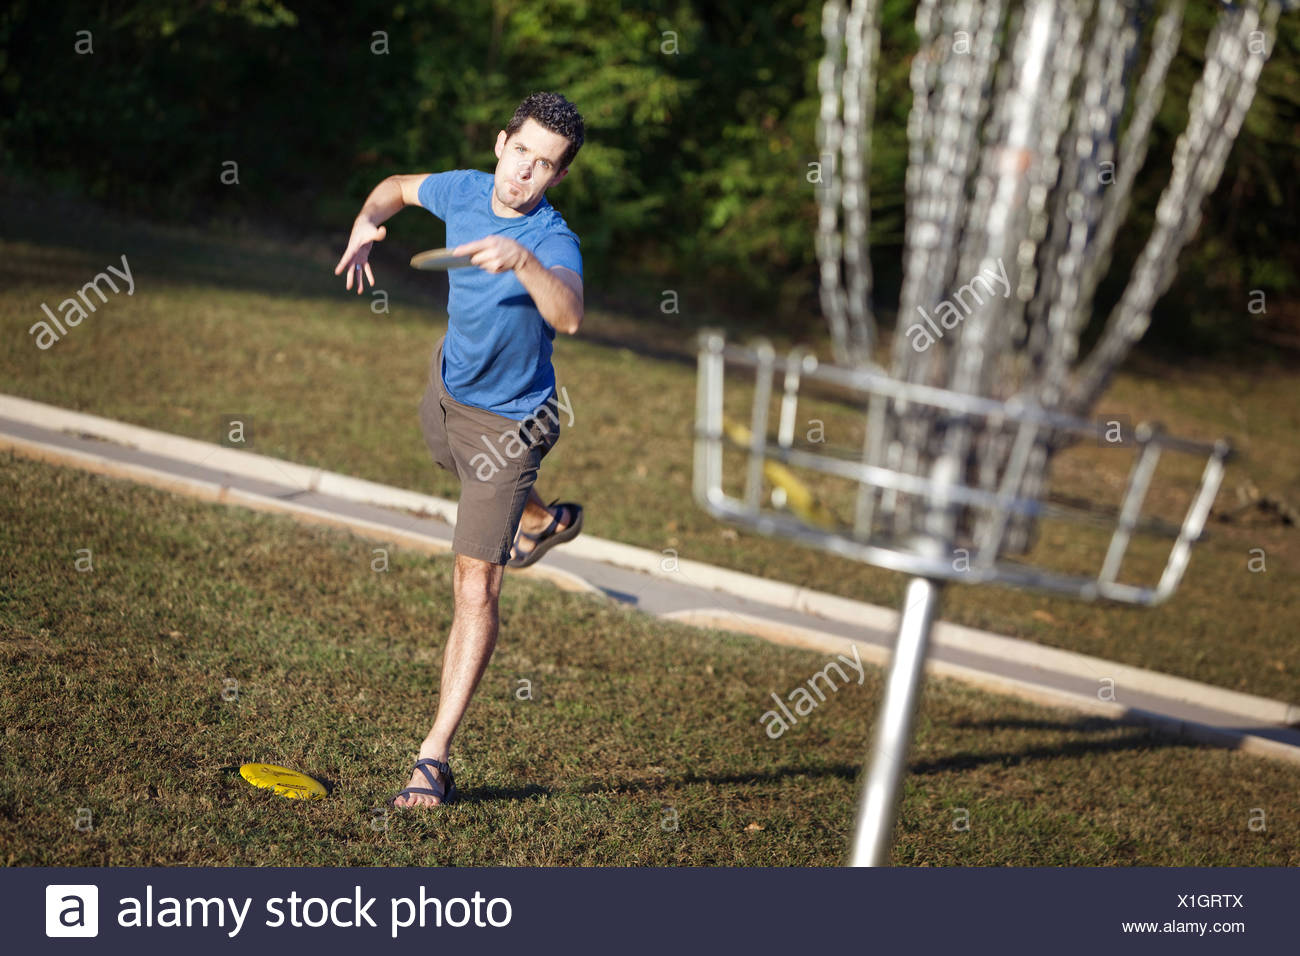 A man playing disc golf attempts a short putt. - Stock Image